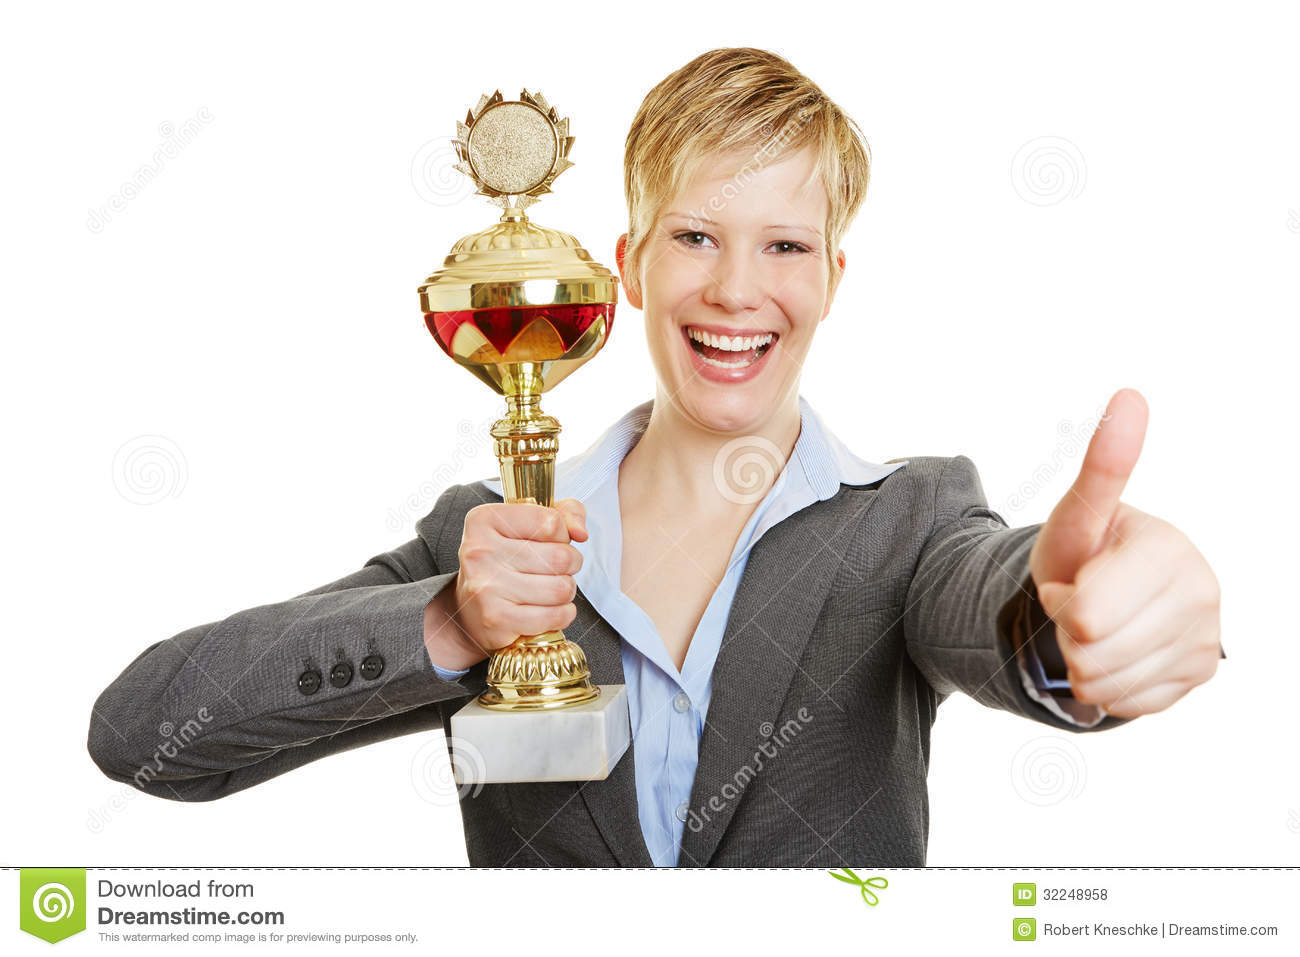 Happy woman with cup holding thumbs up